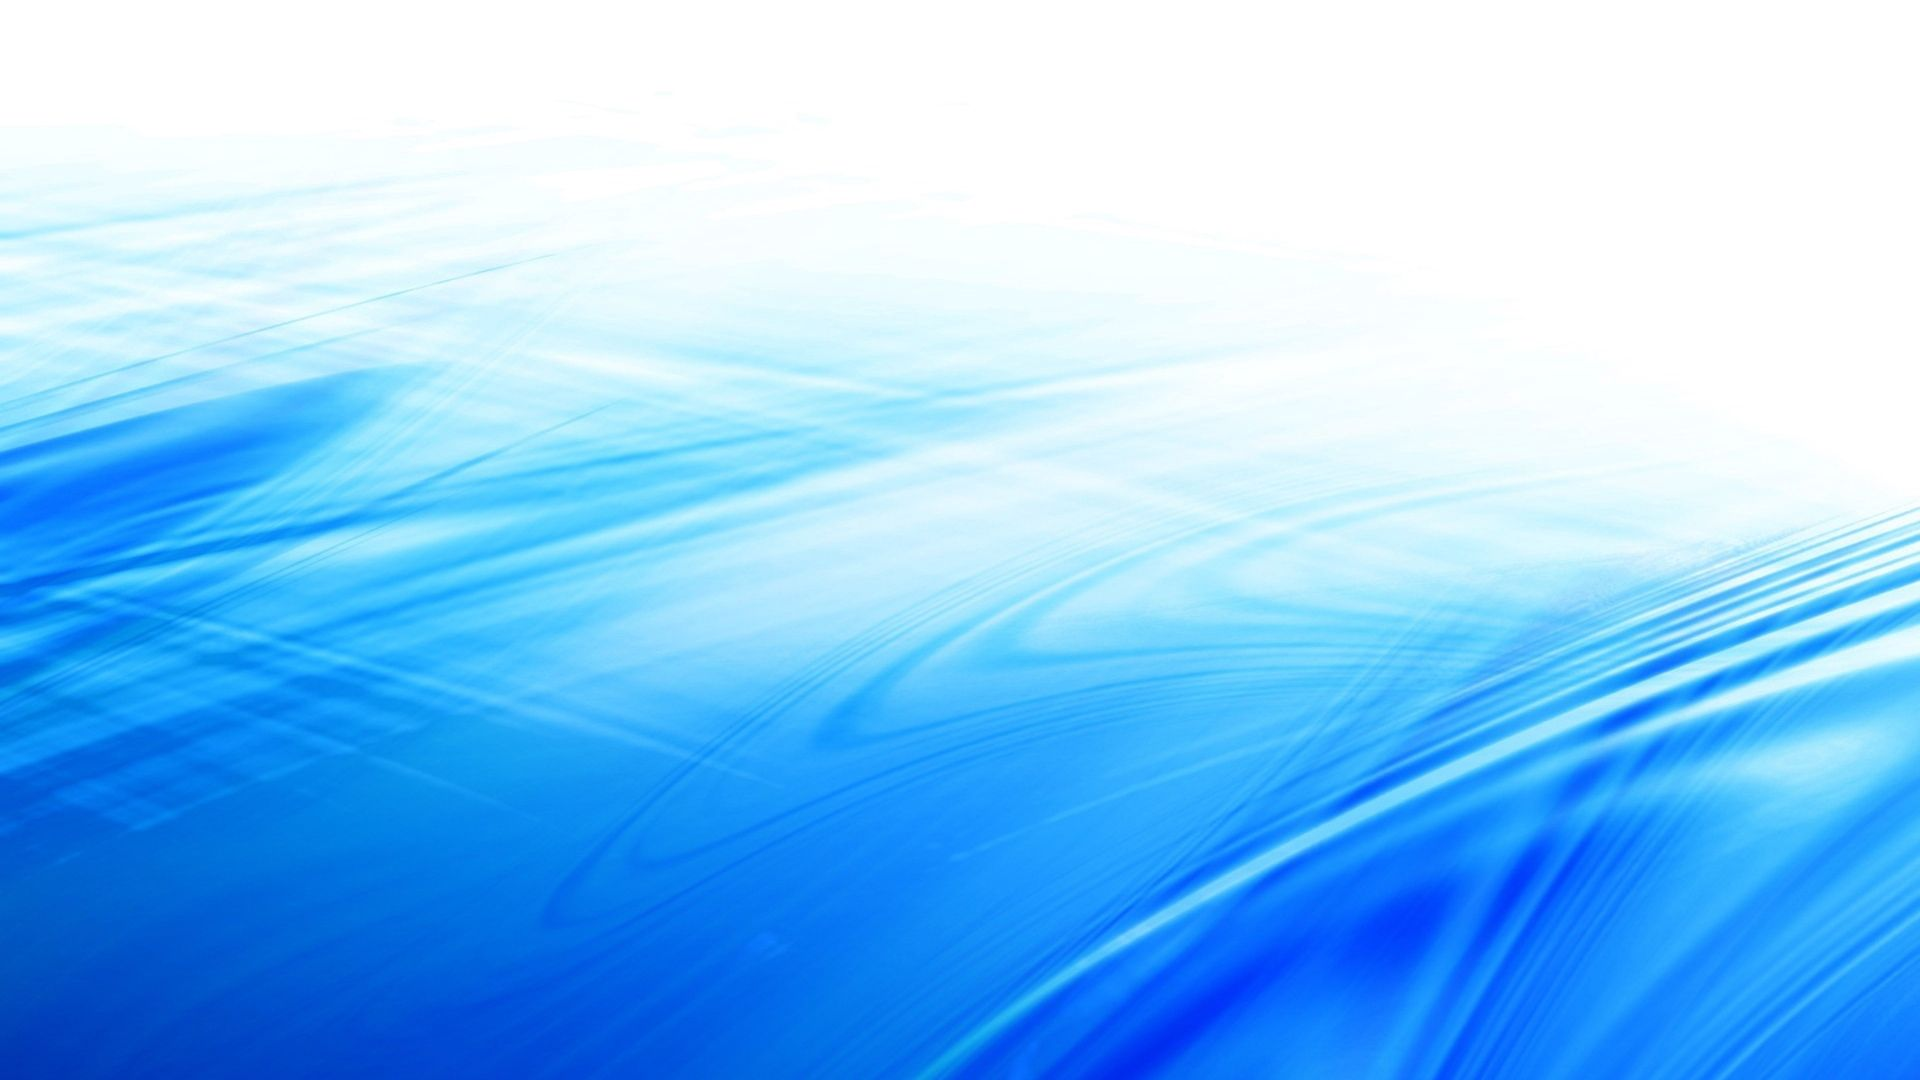 Bright Lines Background, Backgrounds, Blue Abstraction